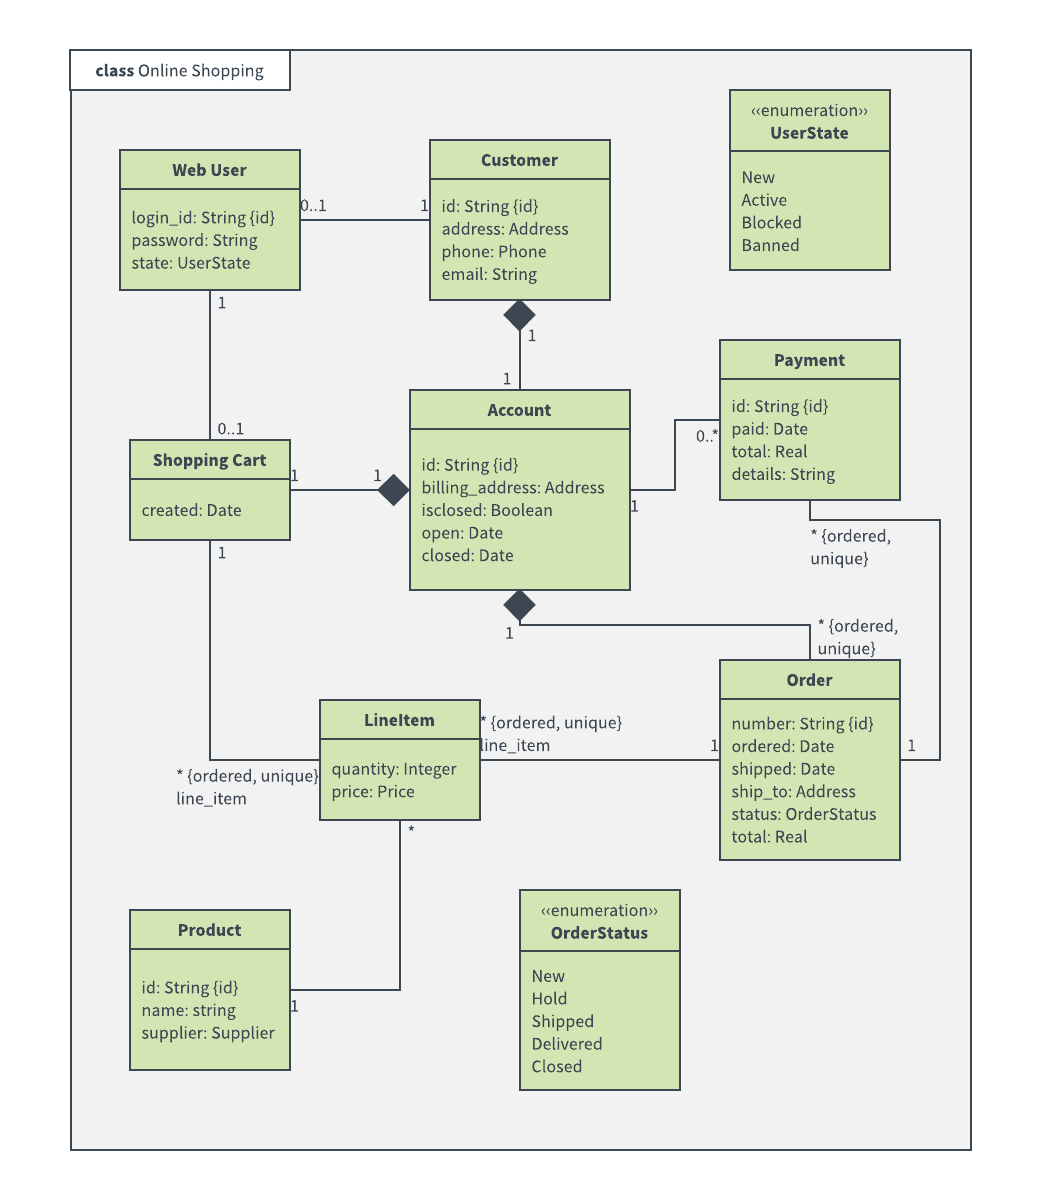 Uml diagram templates and examples lucidchart blog online shopping class diagram example uml ccuart